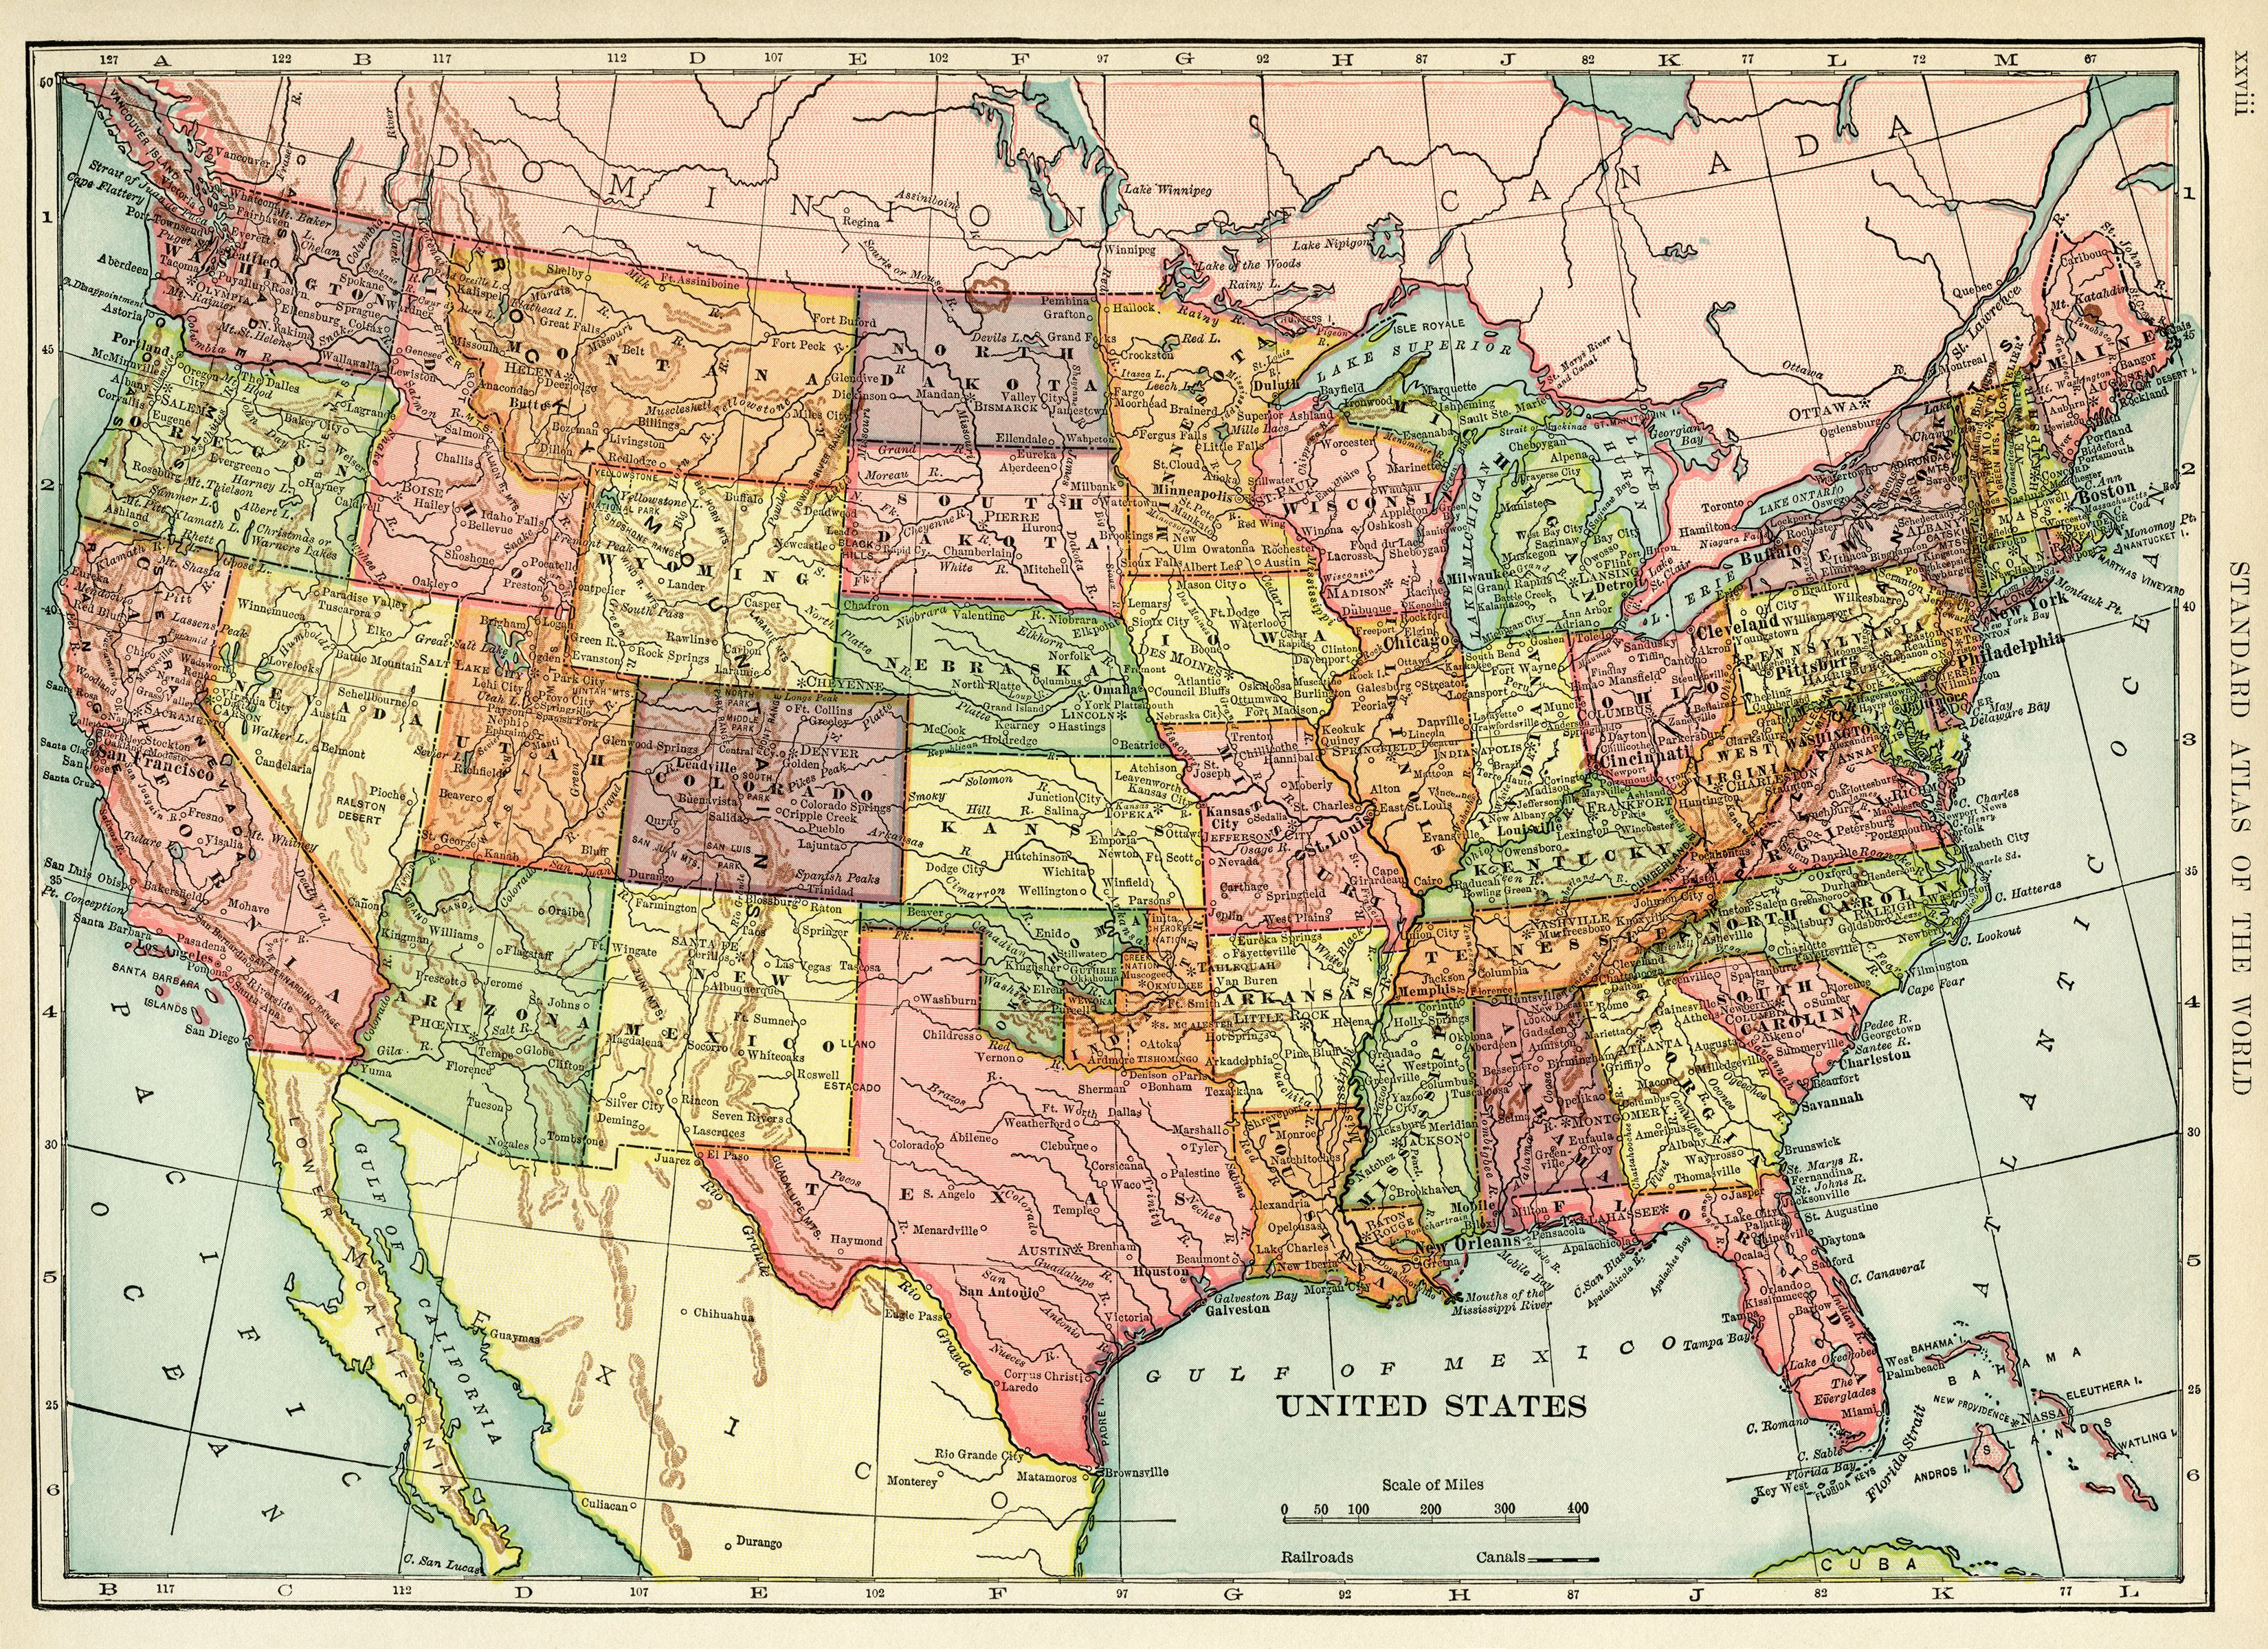 Inited States Map.United States Map Vintage Map Download Antique Map History